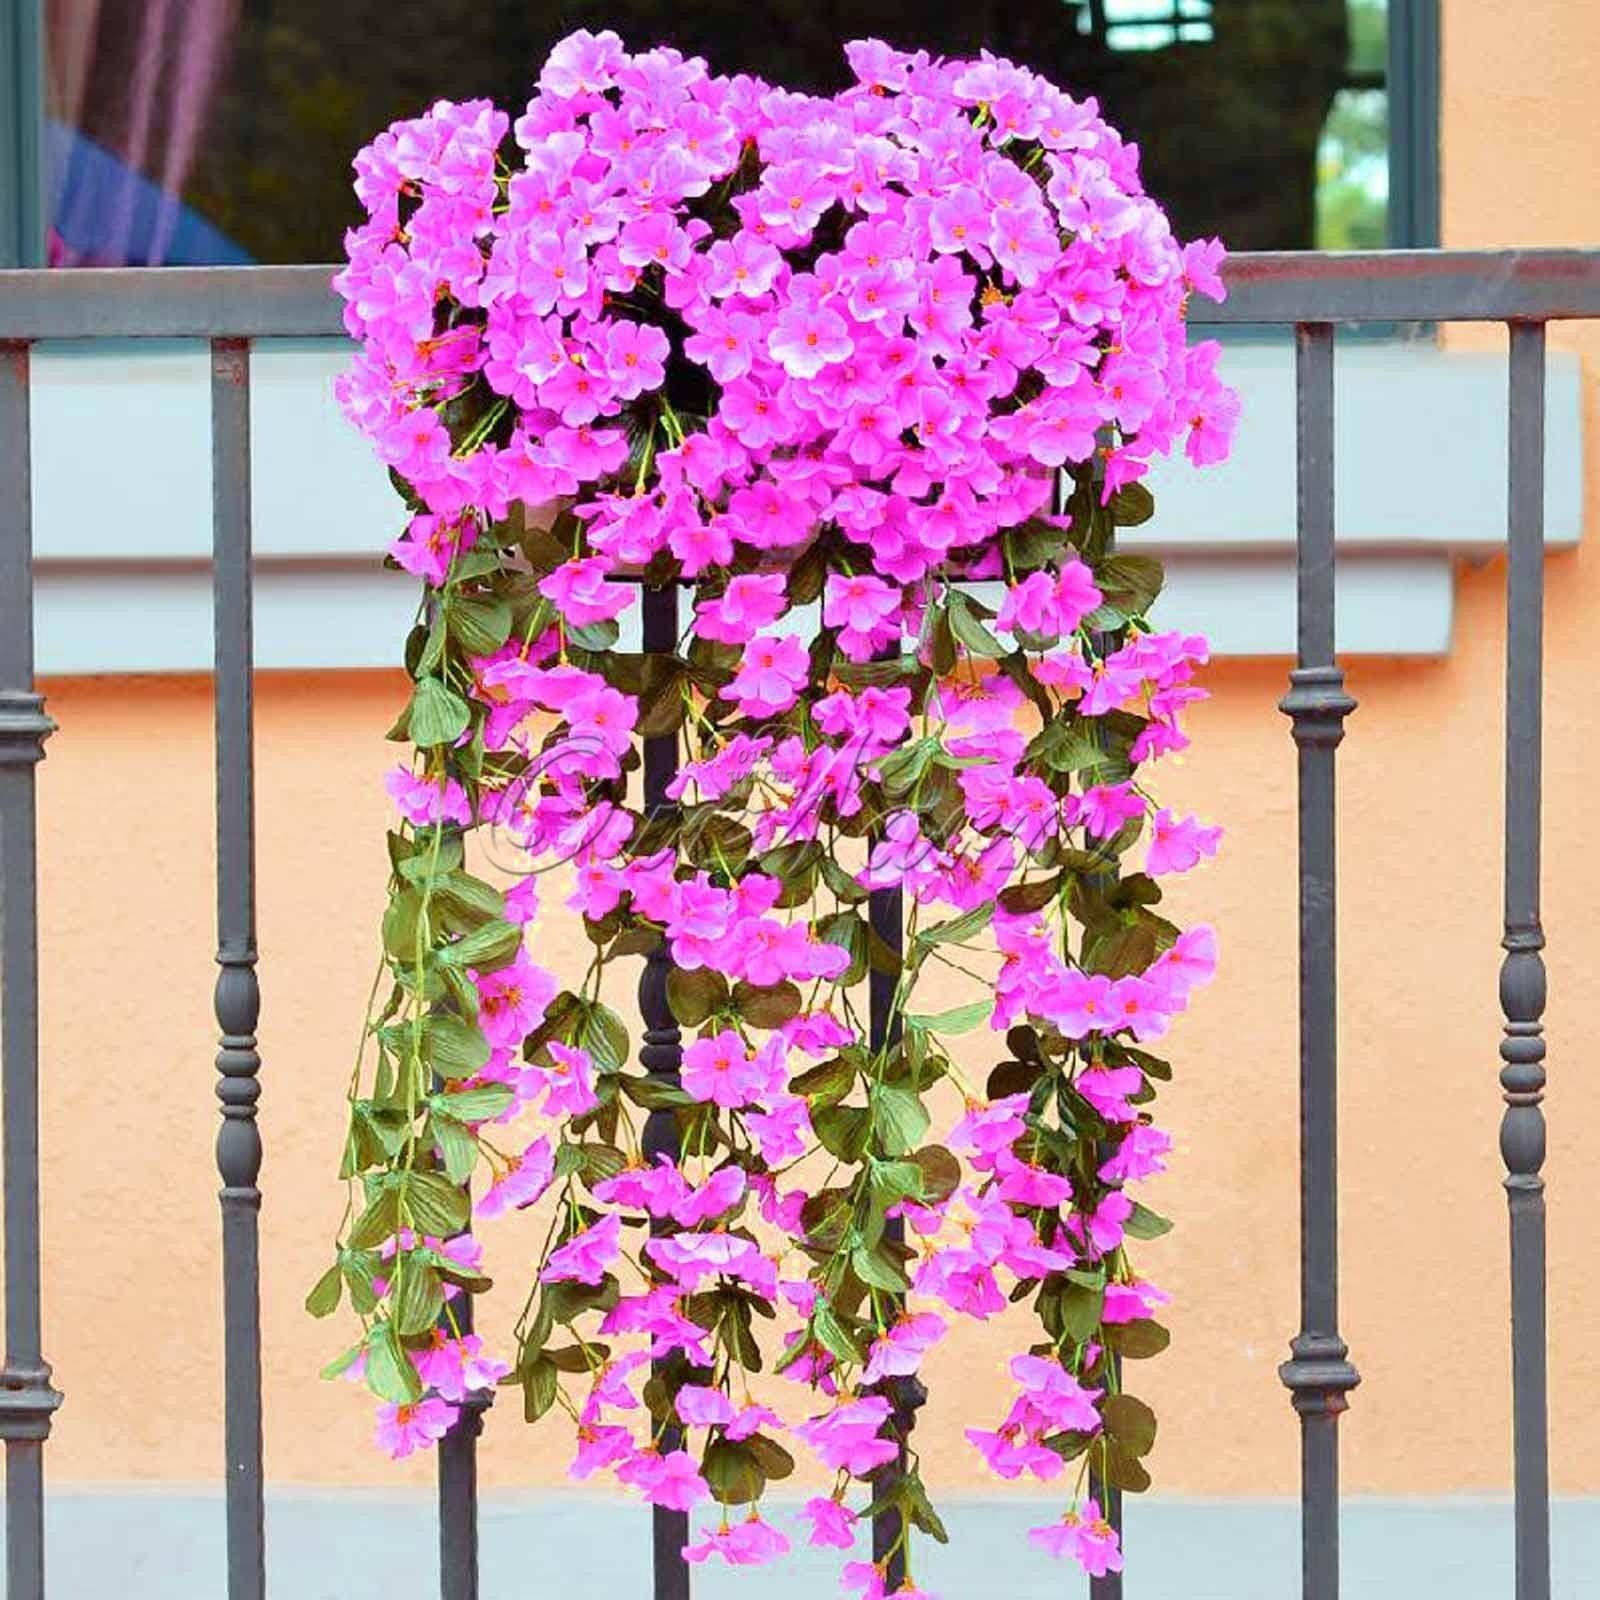 5hanging flower garland artificial violet flower wall wisteria vine 5hanging flower garland artificial violet flower wall wisteria vine flower mightylinksfo